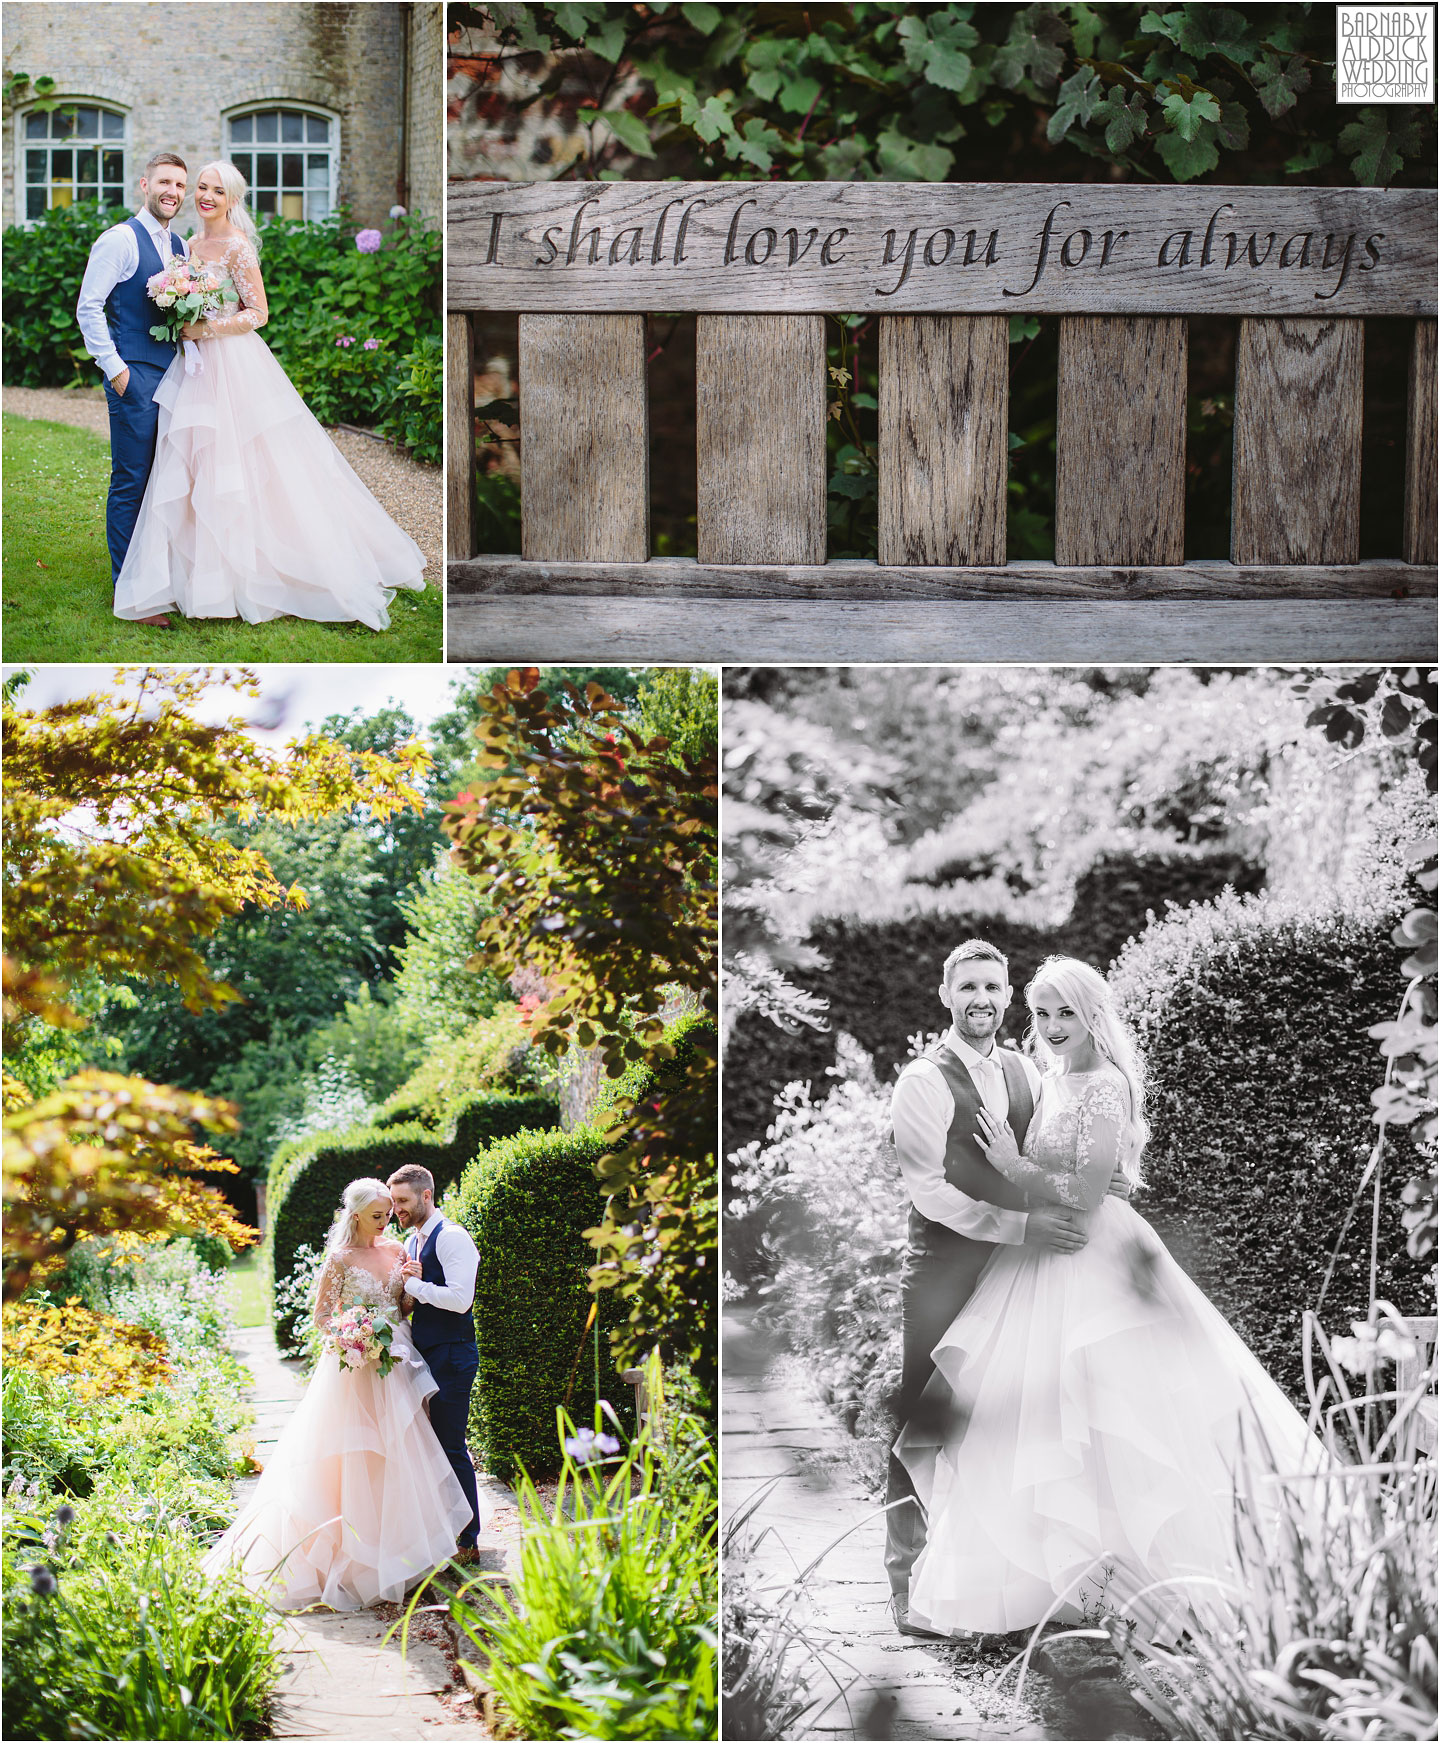 Wedding portraits at Saltmarshe Hall, Wedding photography at Saltmarshe Hall, East Yorkshire Wedding Photos